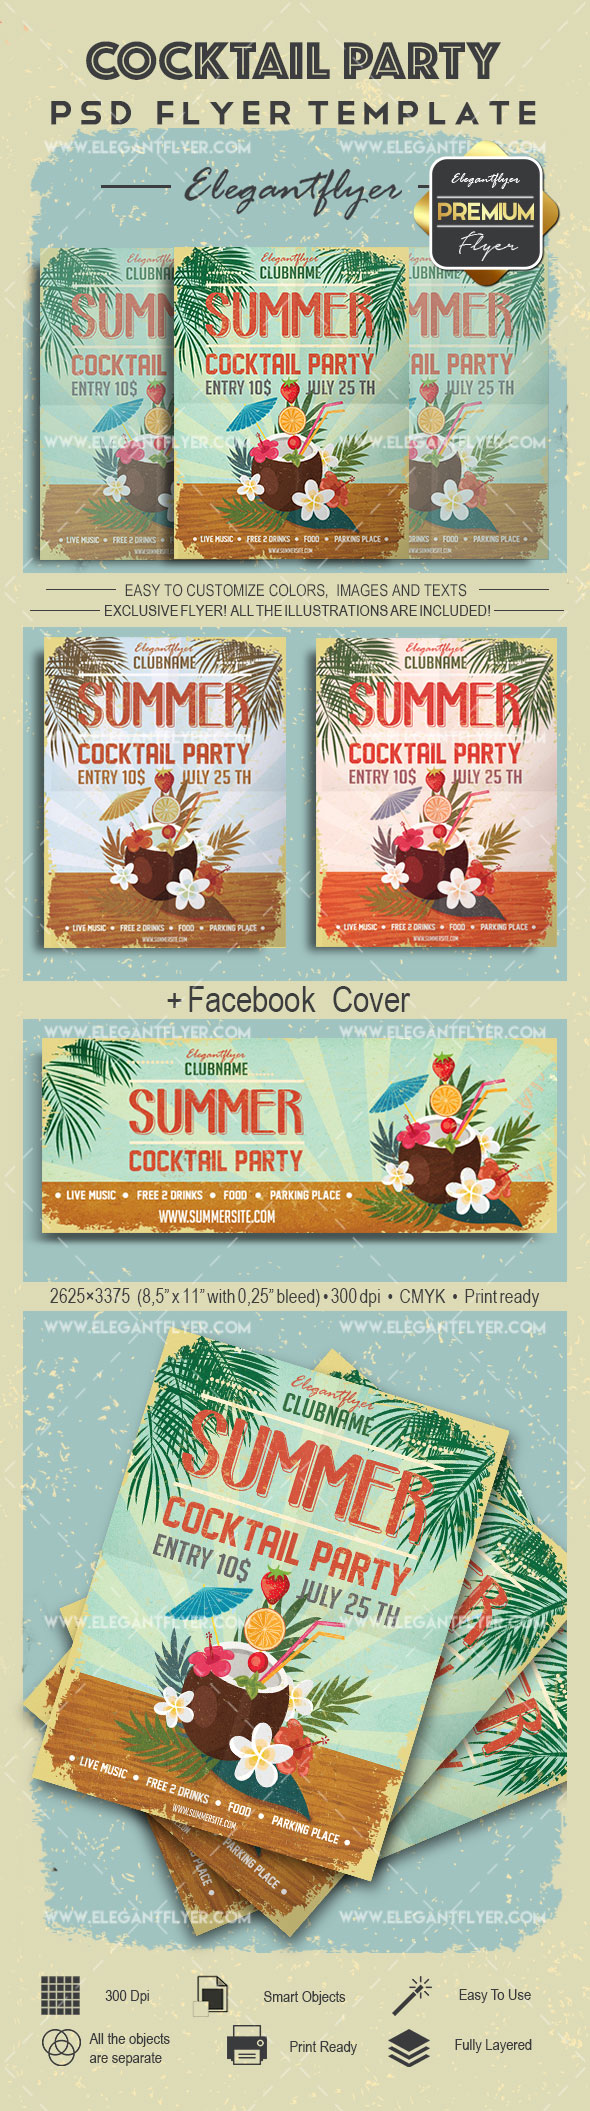 Cocktail Party- Flyer PSD Template